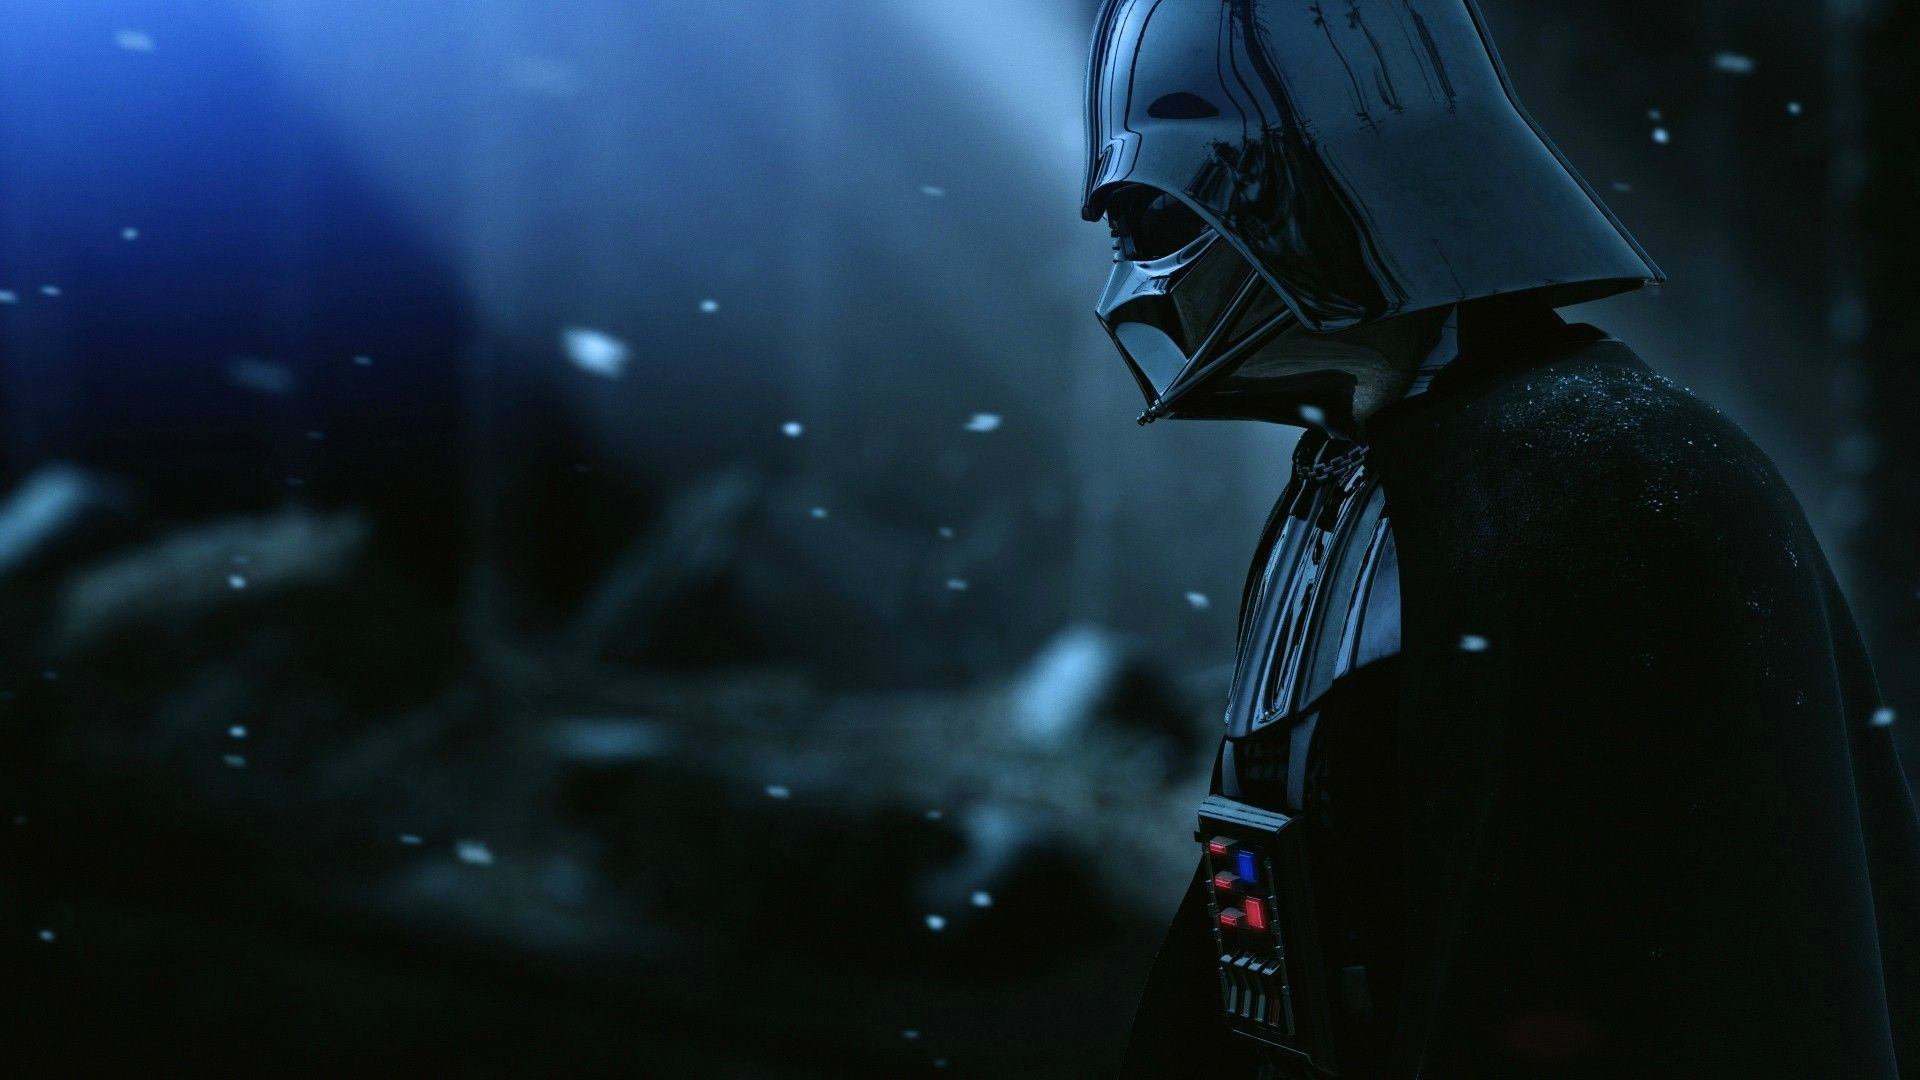 Lord Vader During A Moment Of Quiet Reflection 1920x1080 Hq Backgrounds Hd Wallpapers Galle Darth Vader Wallpaper Star Wars Background Star Wars Wallpaper